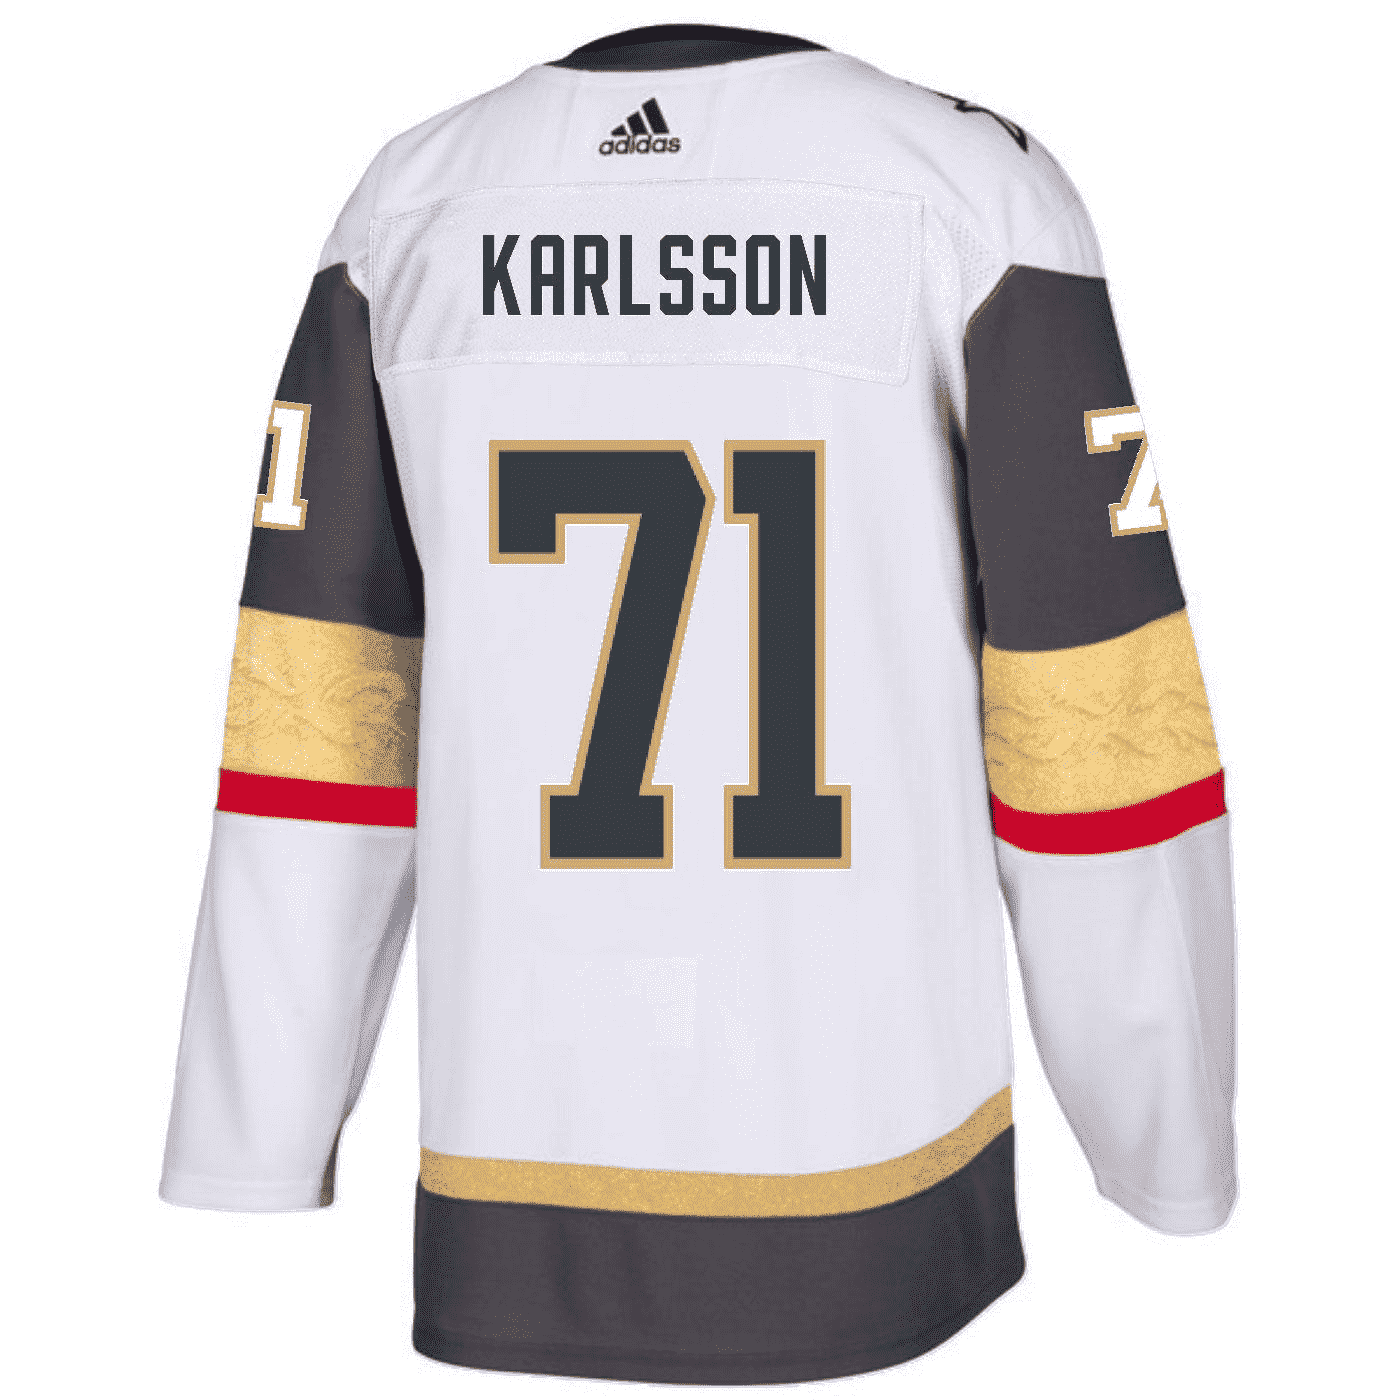 reputable site 6c13d 85734 Las Vegas Golden Knights Home Jerseys – GoodsByAdrian